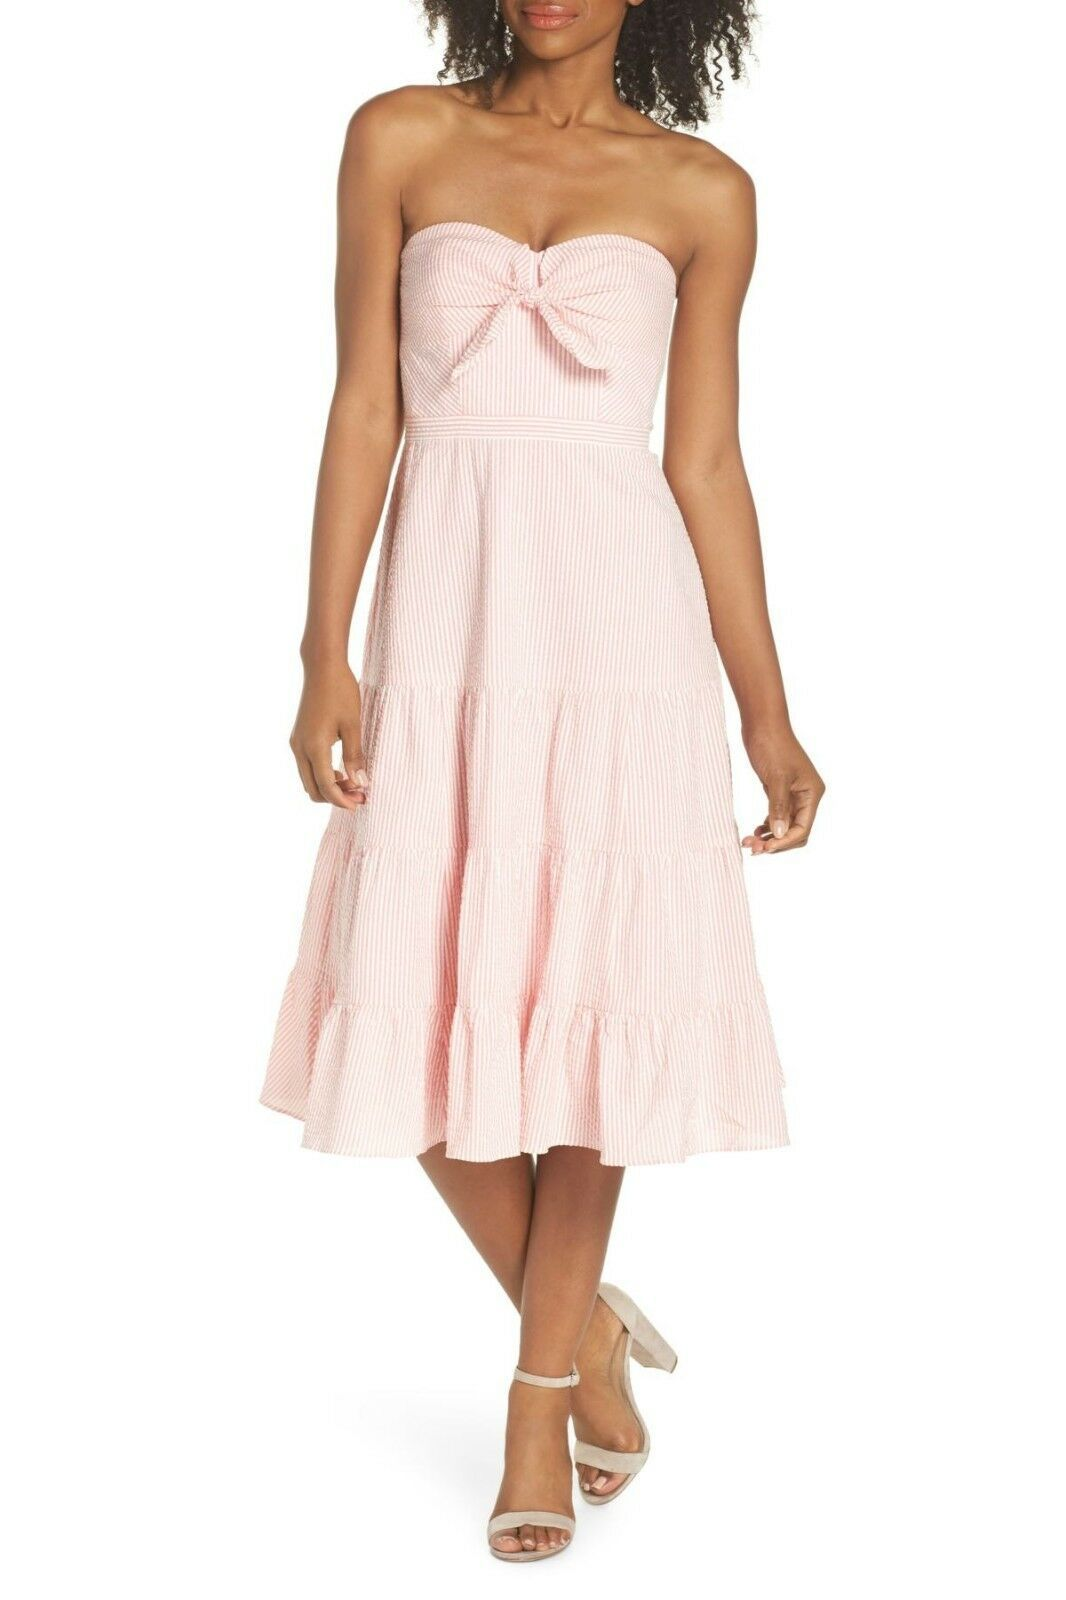 Primary image for J.crew Tie Front Strapless Dress, Bright coral, size 8 Retail $158, #G1006